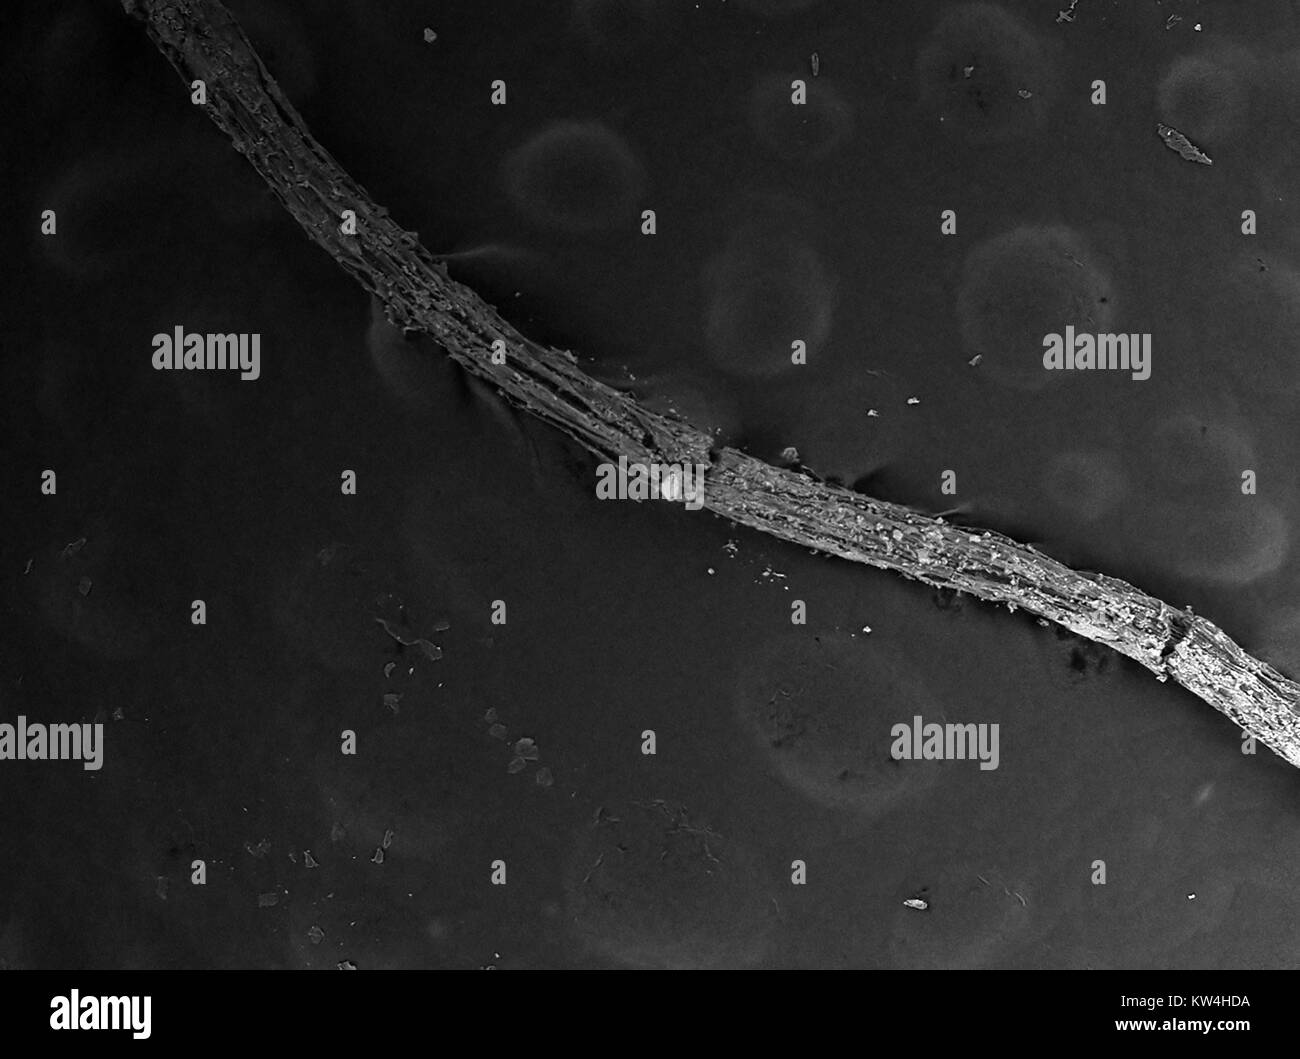 images made with electron microscope